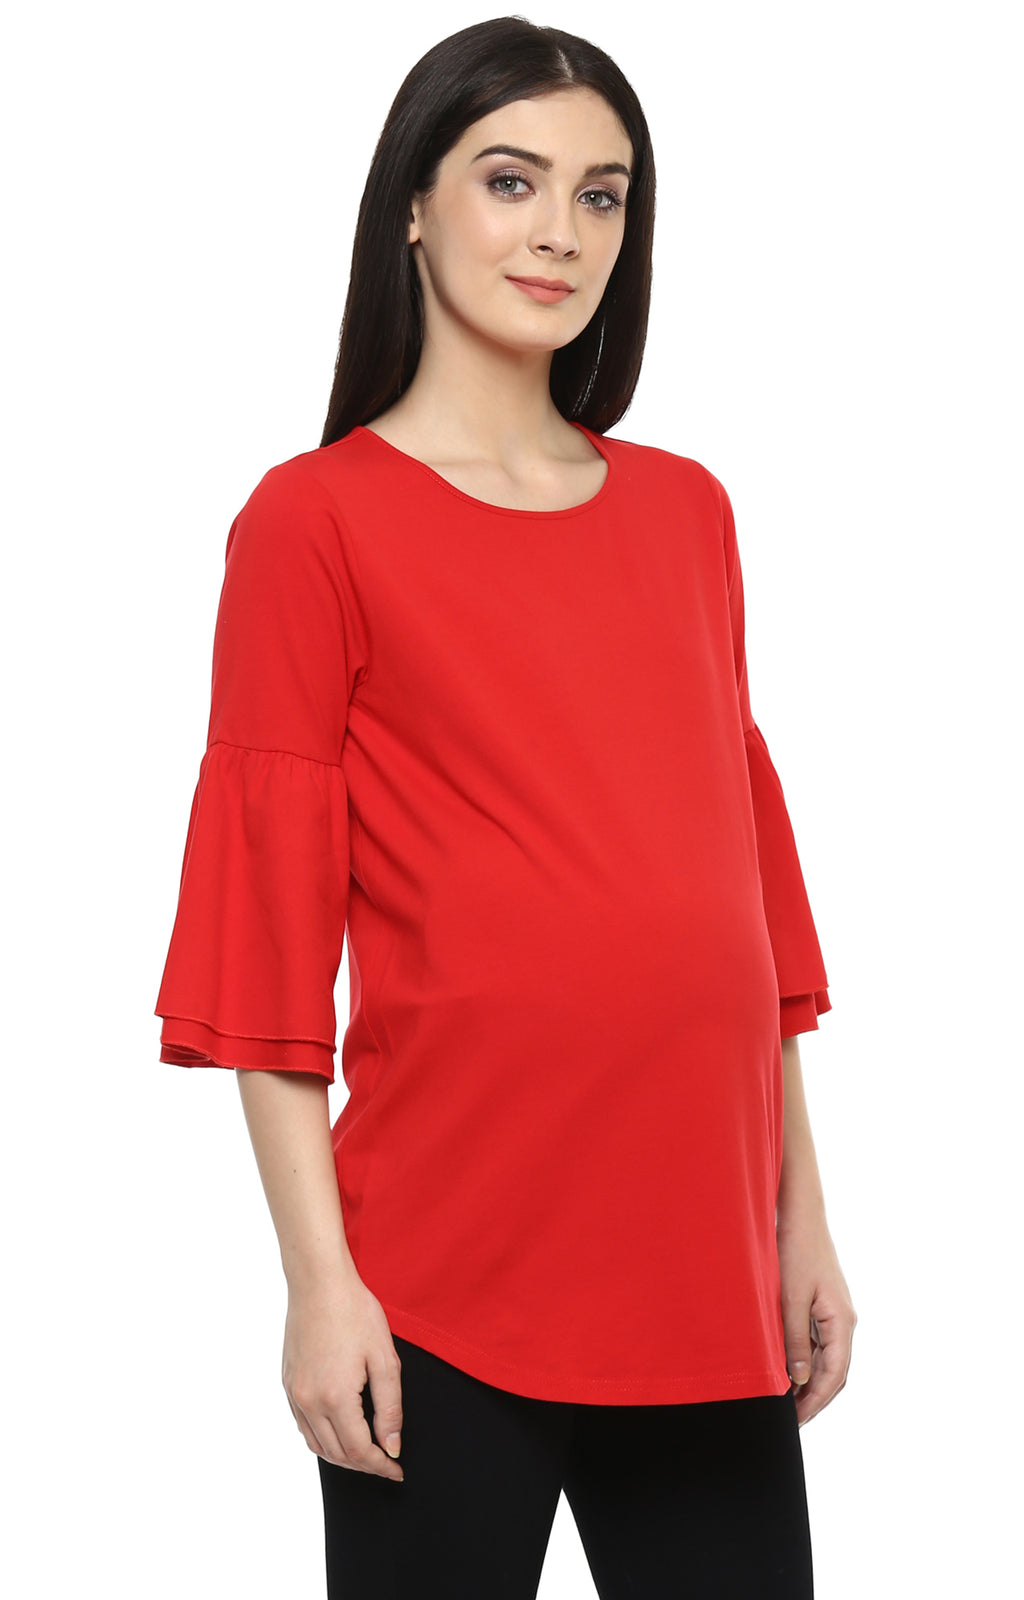 Maternity Bell Sleeve Red Top - momsoon maternity fashion wear